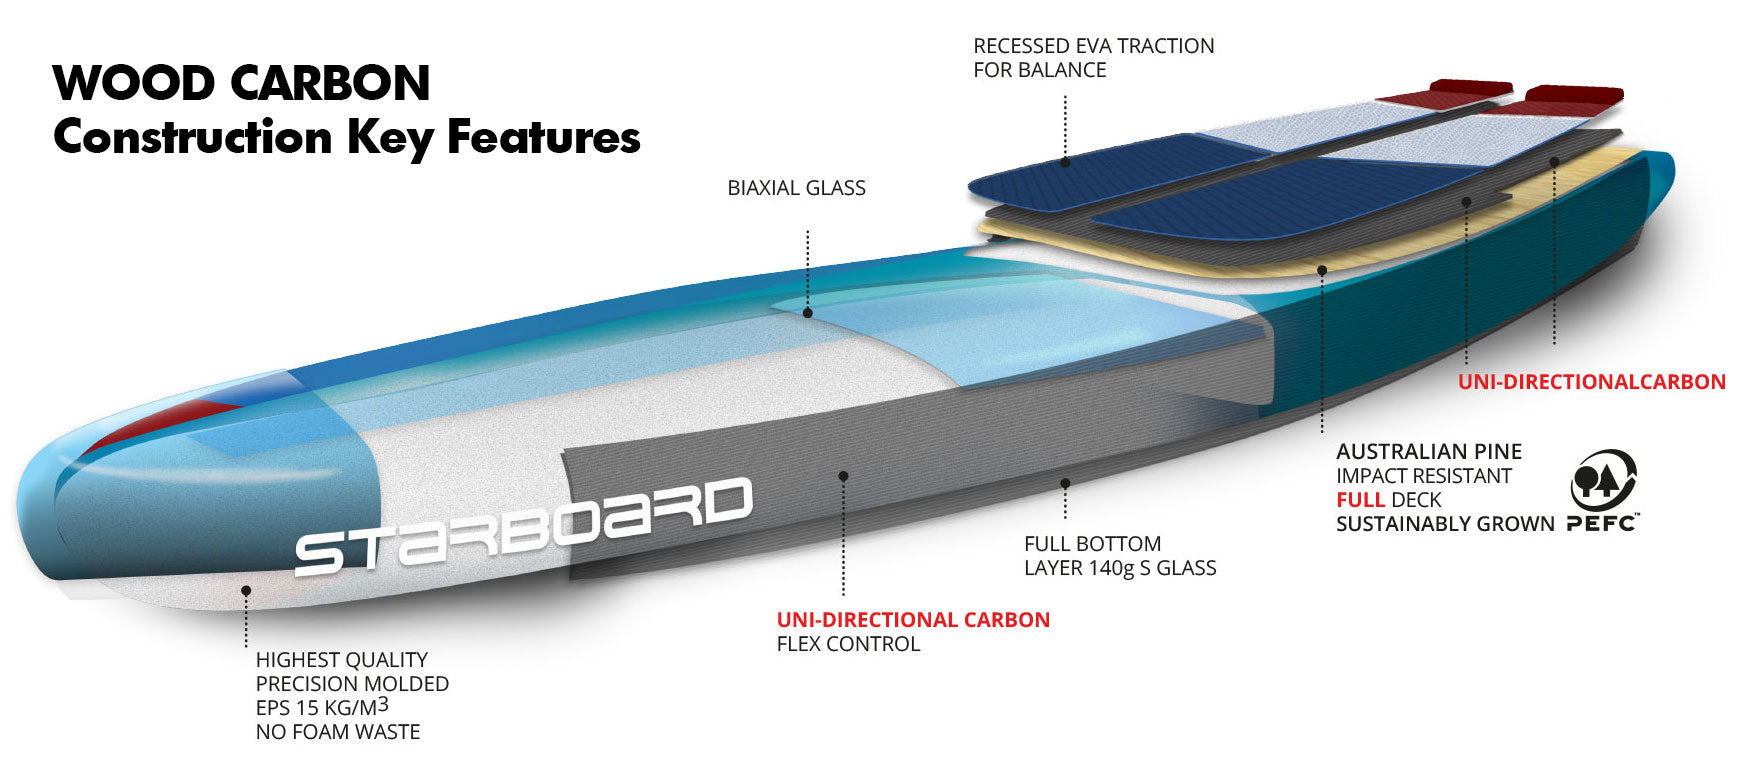 2022 Starboard Wood Carbon